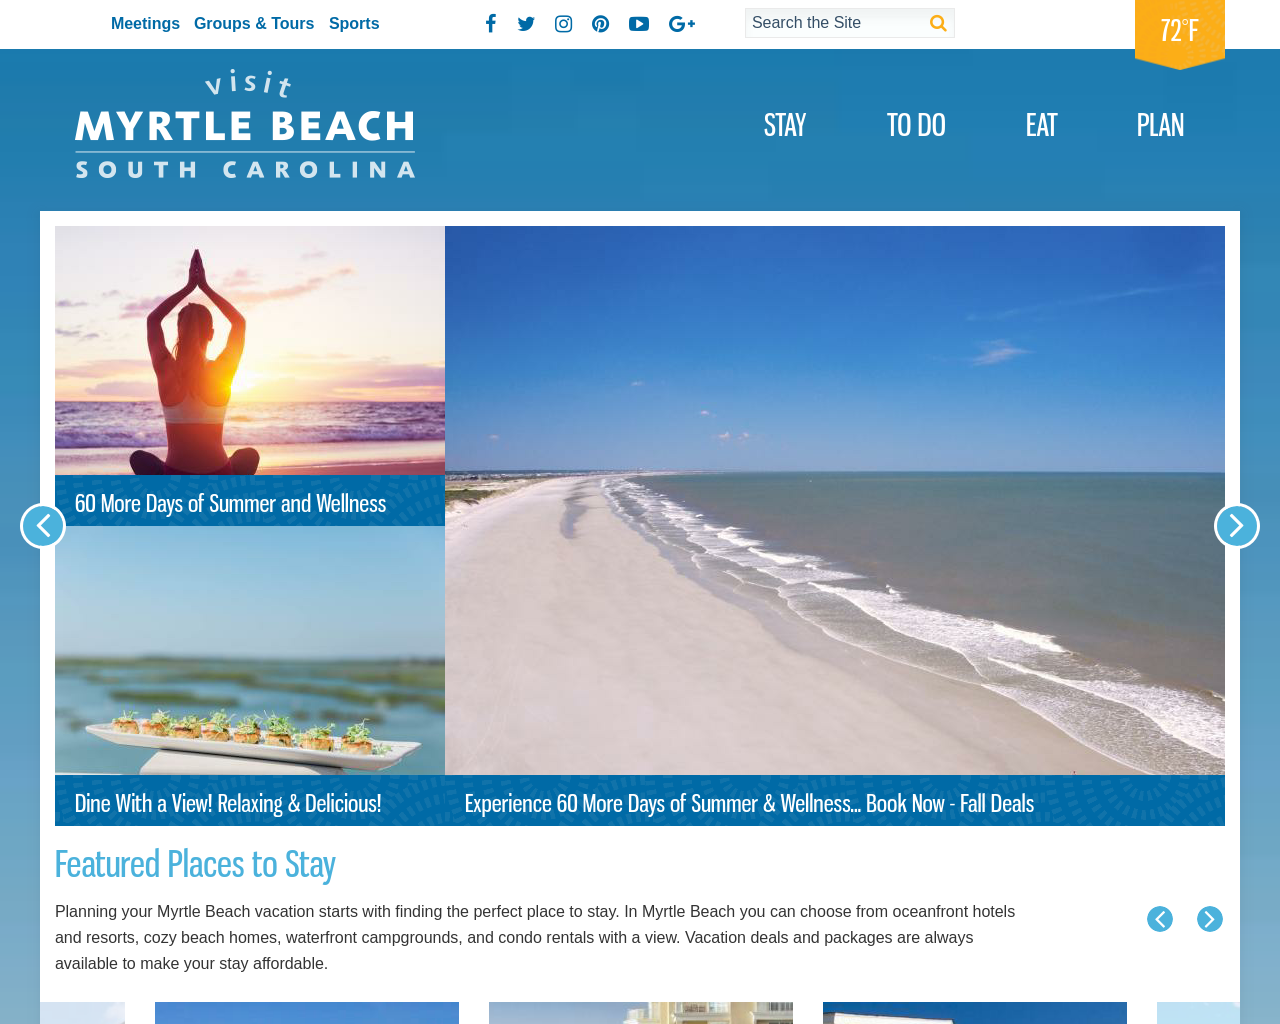 Visit-Myrtle-Beach-Advertising-Reviews-Pricing